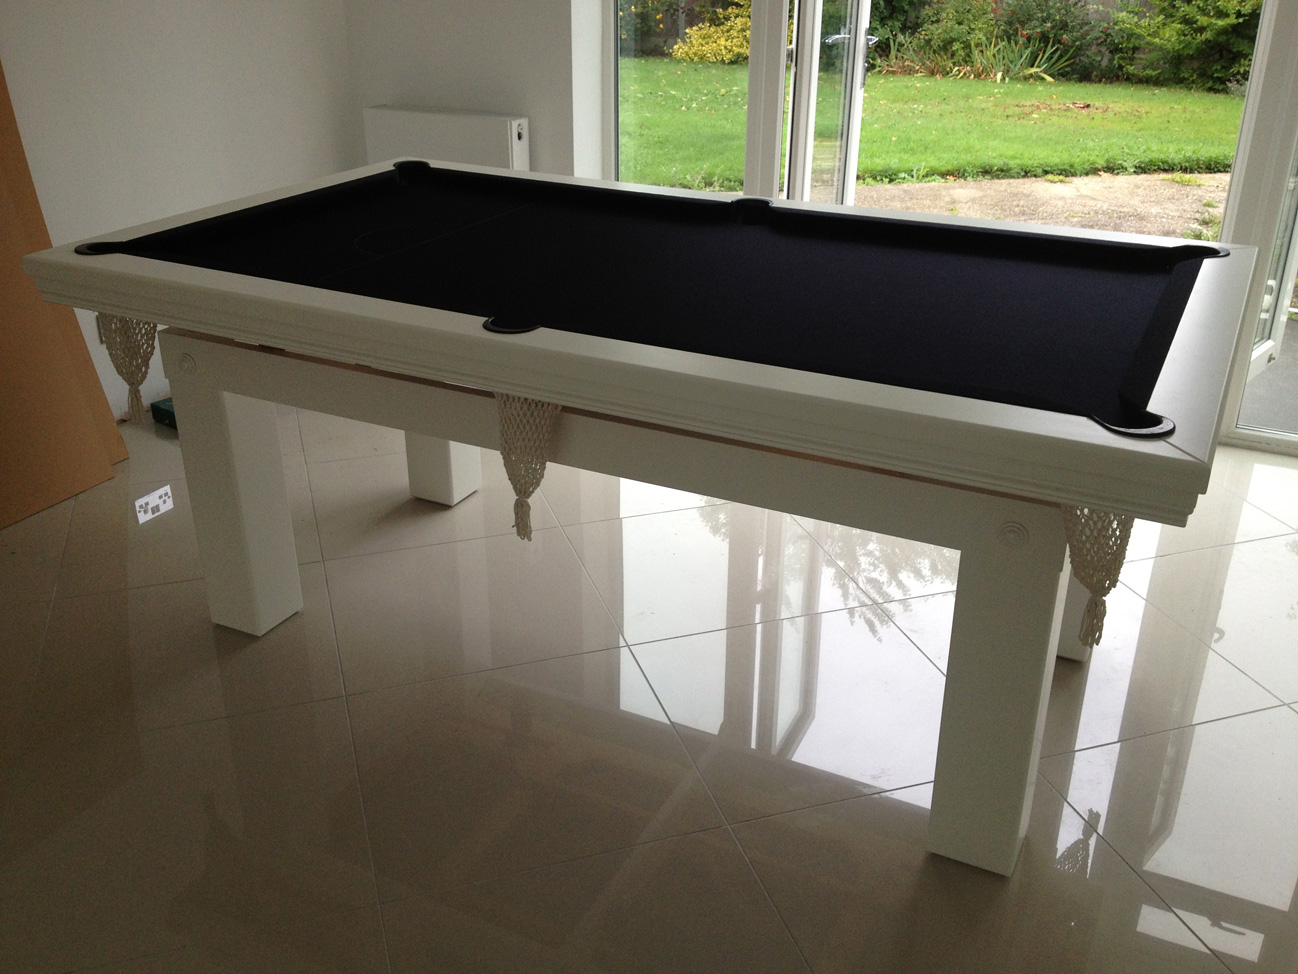 Pool diner 7ft in white black snooker pool table for 7ft dining room table